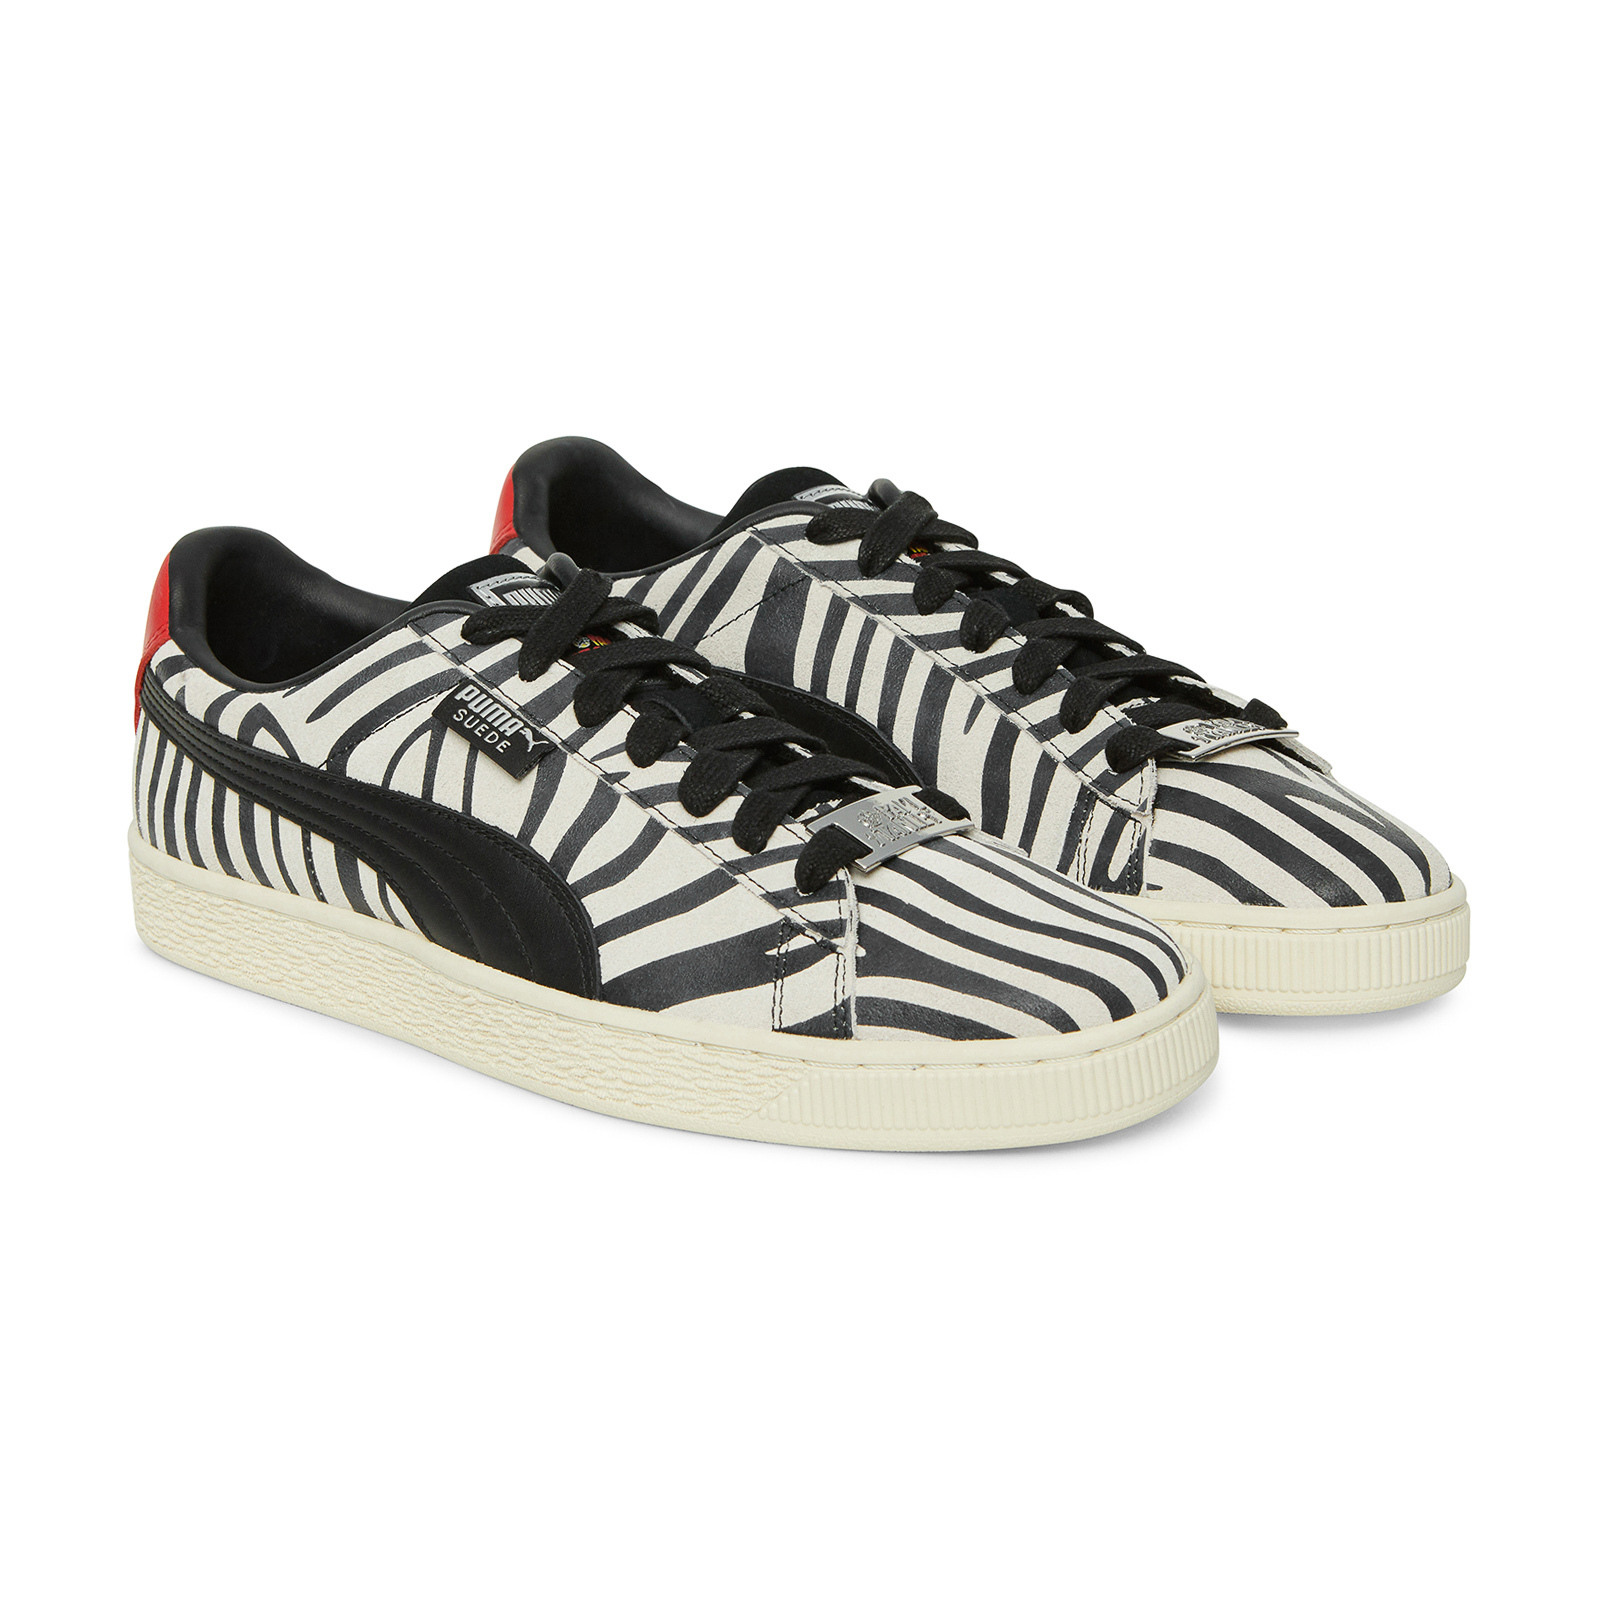 san francisco be32a 6199f Puma Suede 50 x Paul Stanley (Black/ White and 50 similar items